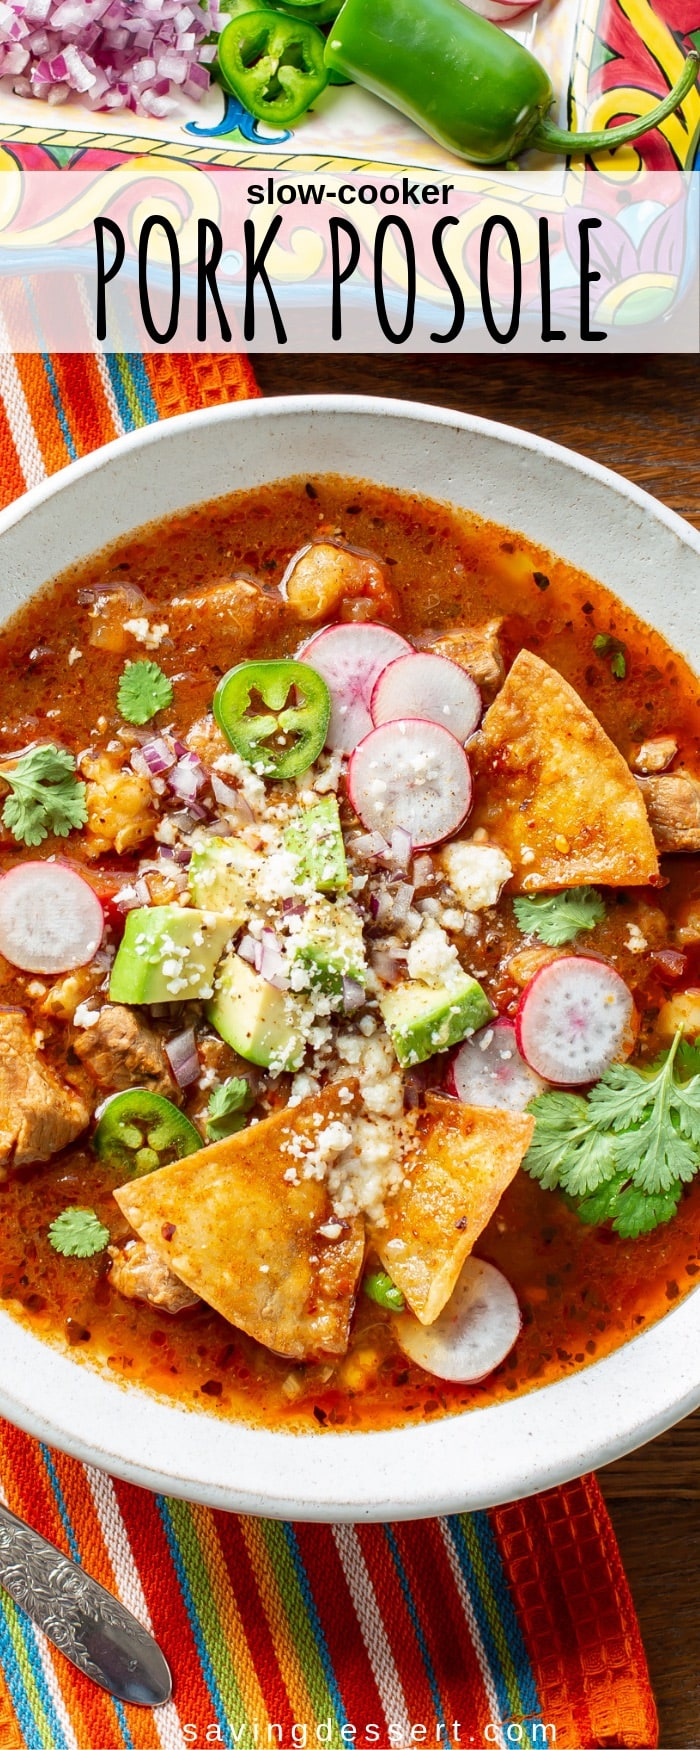 Try this robust Slow-Cooker Pork Posole Recipe next time you have a craving for flavorful, hearty and comforting Mexican soup! #slowcooker #mexicansoup #mexican #pork #posole #soup #hominy #adobo